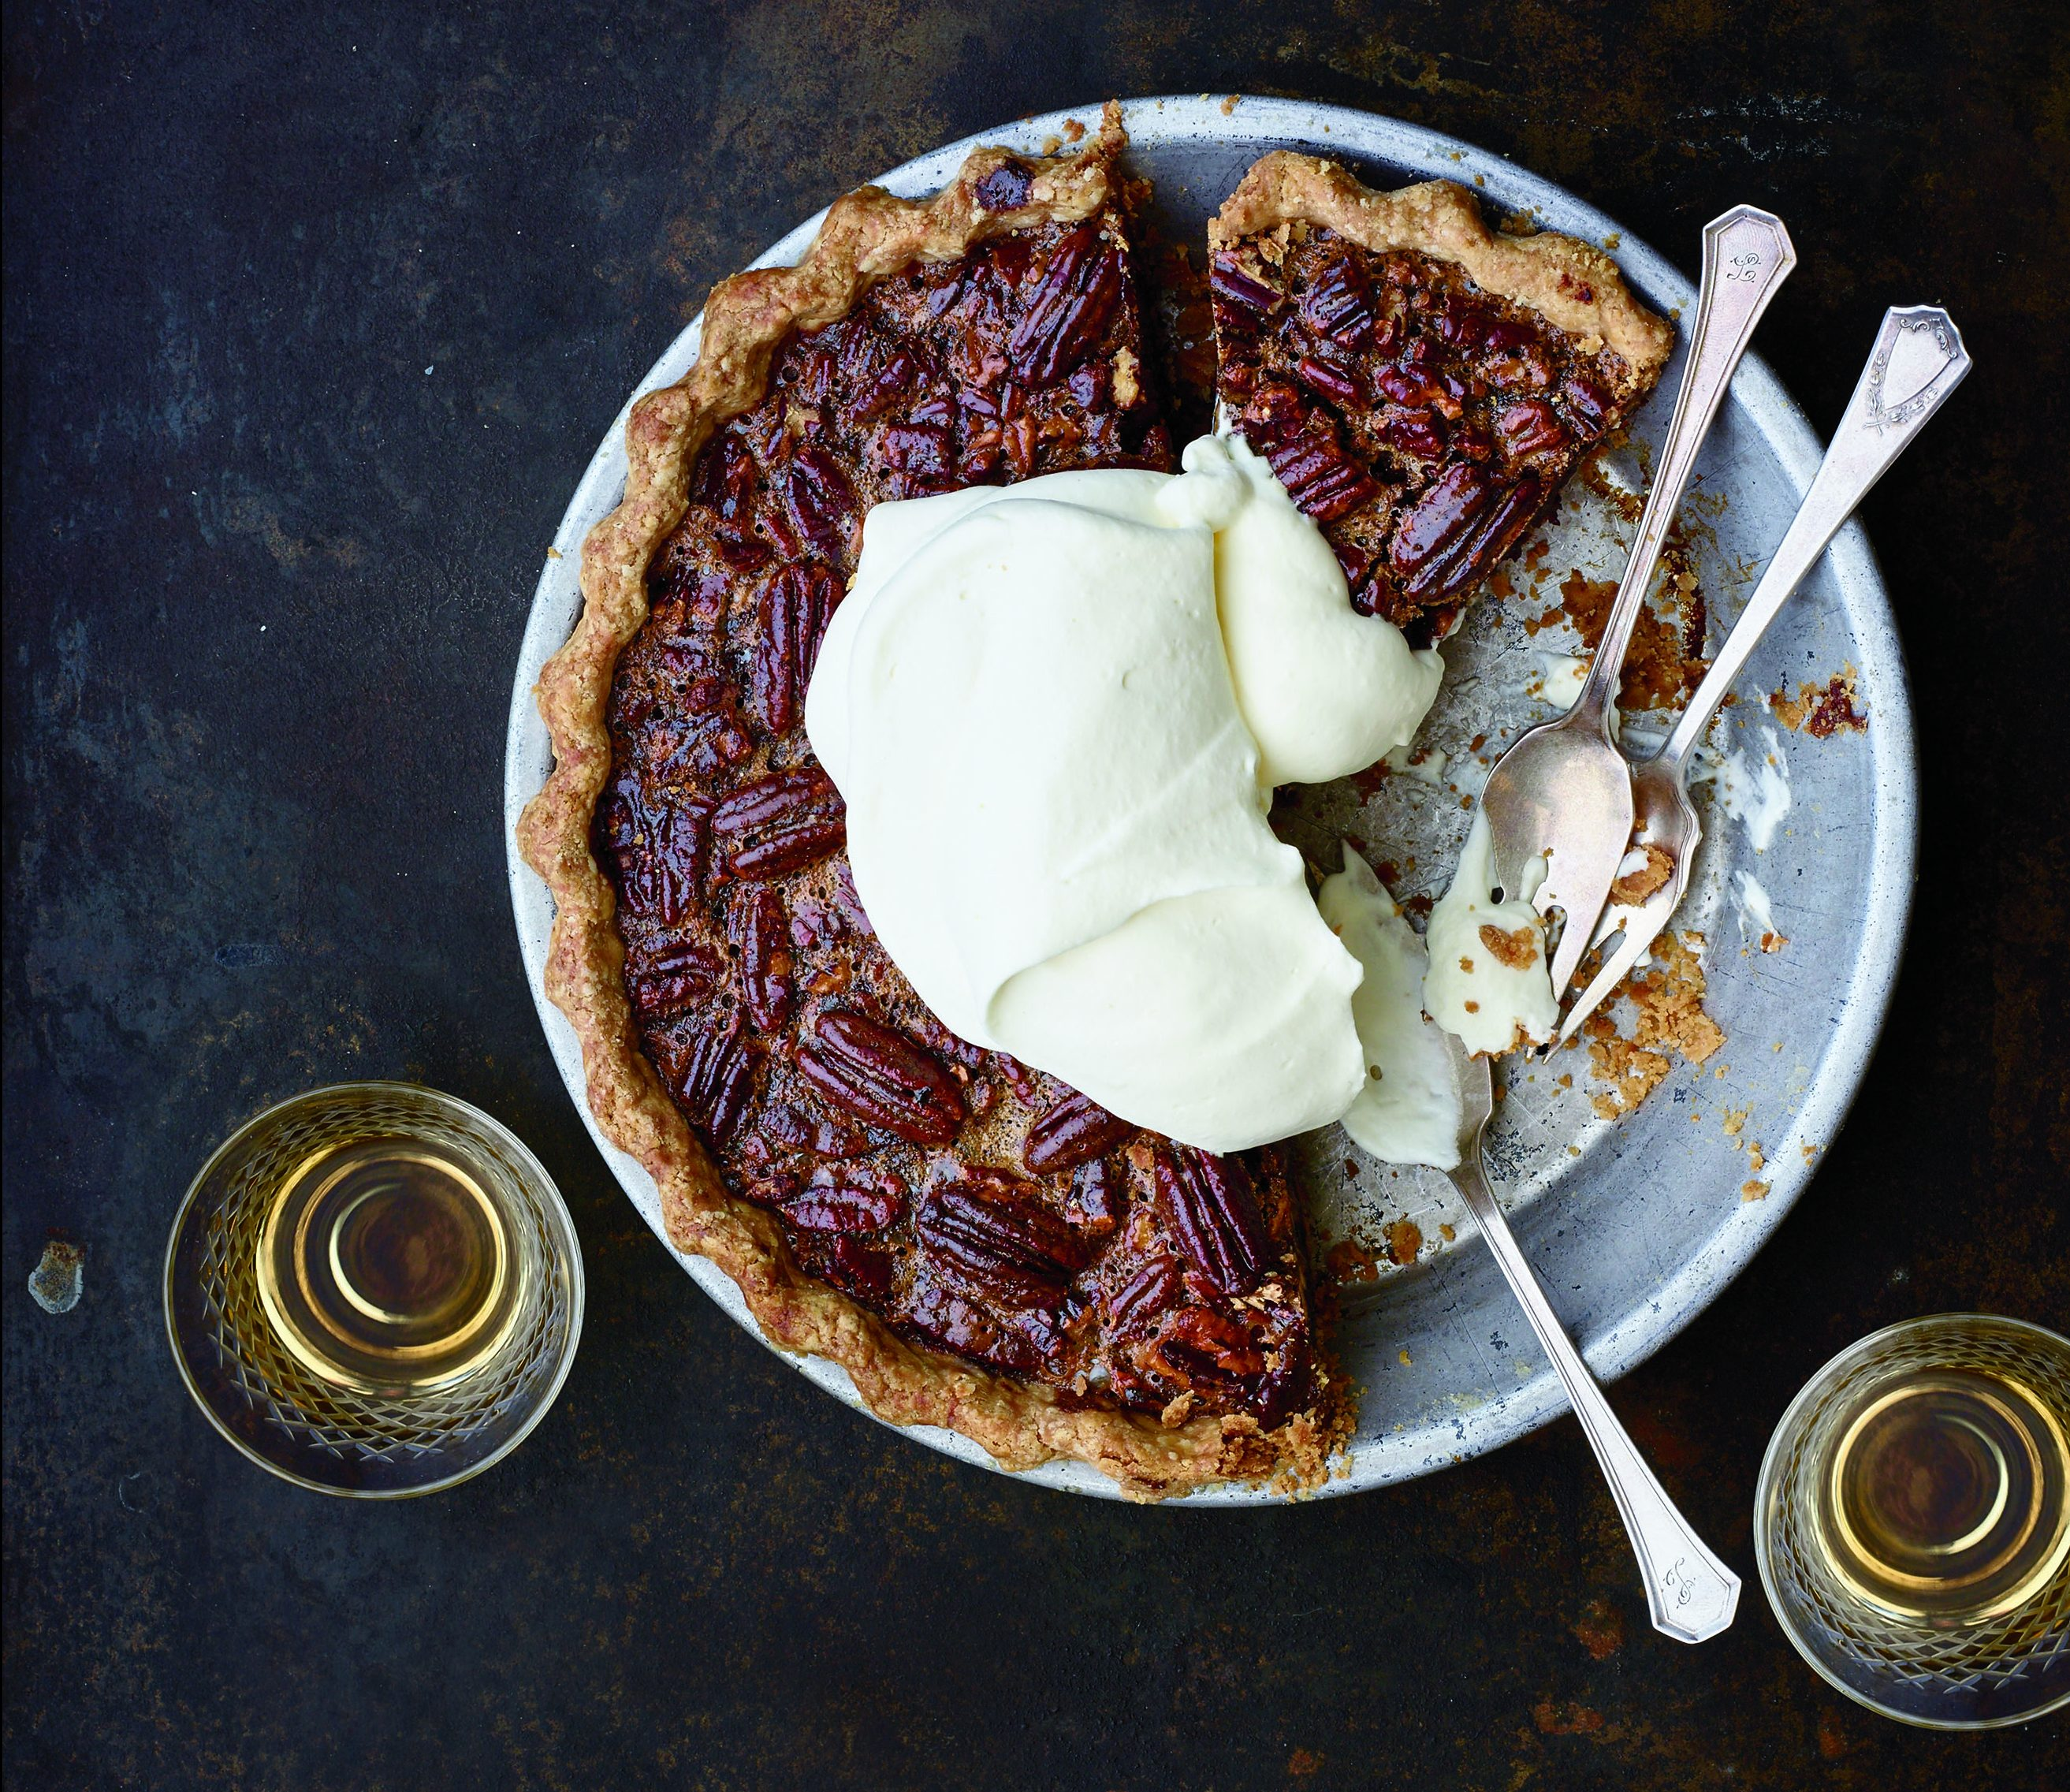 This filling is swirled with toasty brown butter and studded with rich and chewy dates cooked in espresso, which helps cut the sweetness you expect in most pecan pies.